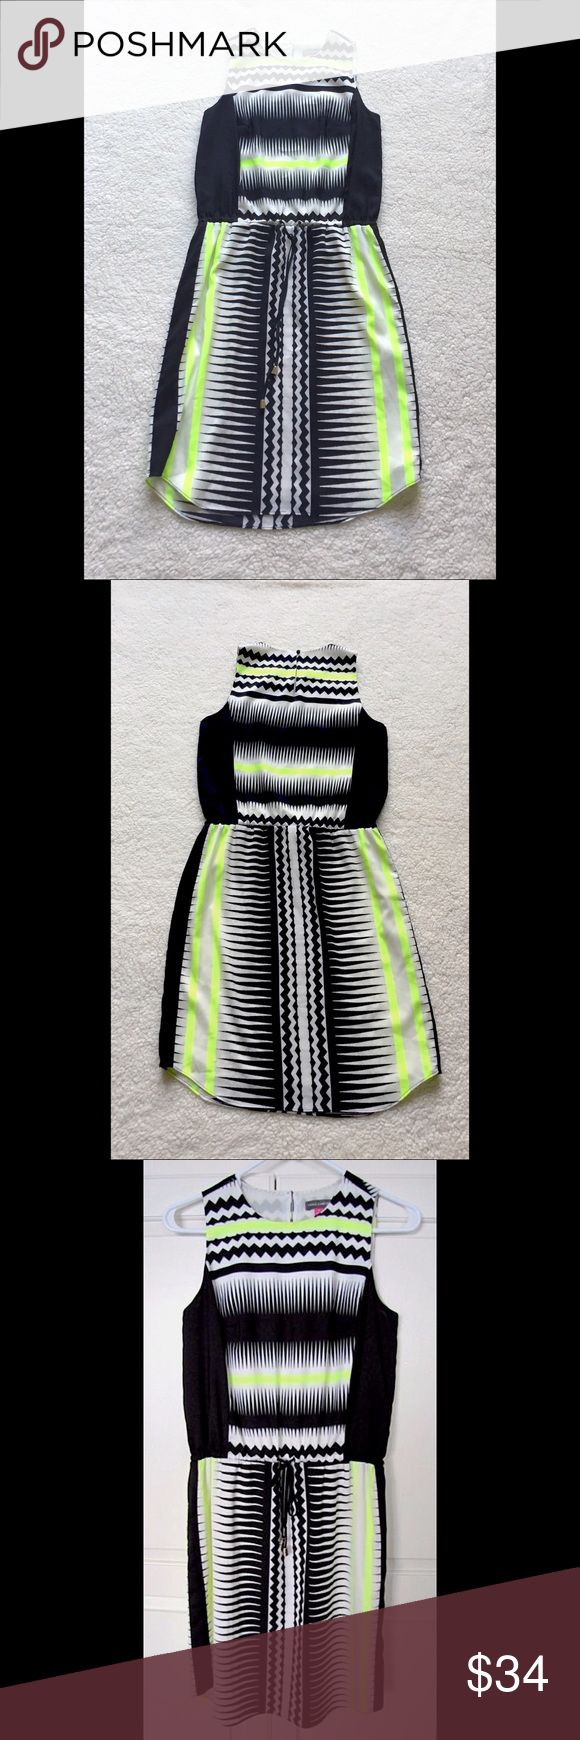 Vince Camuto Tie Waist Black & Neon Yellow Dress Vince Camuto Sleeveless Knee-Length Lined Summer Dress Size 2.                                   97% polyester and 3% spandex.               Colors - black, white, neon yellow/green.             Has a tie waist. Has a key hole with button on the back. Vince Camuto Dresses Midi